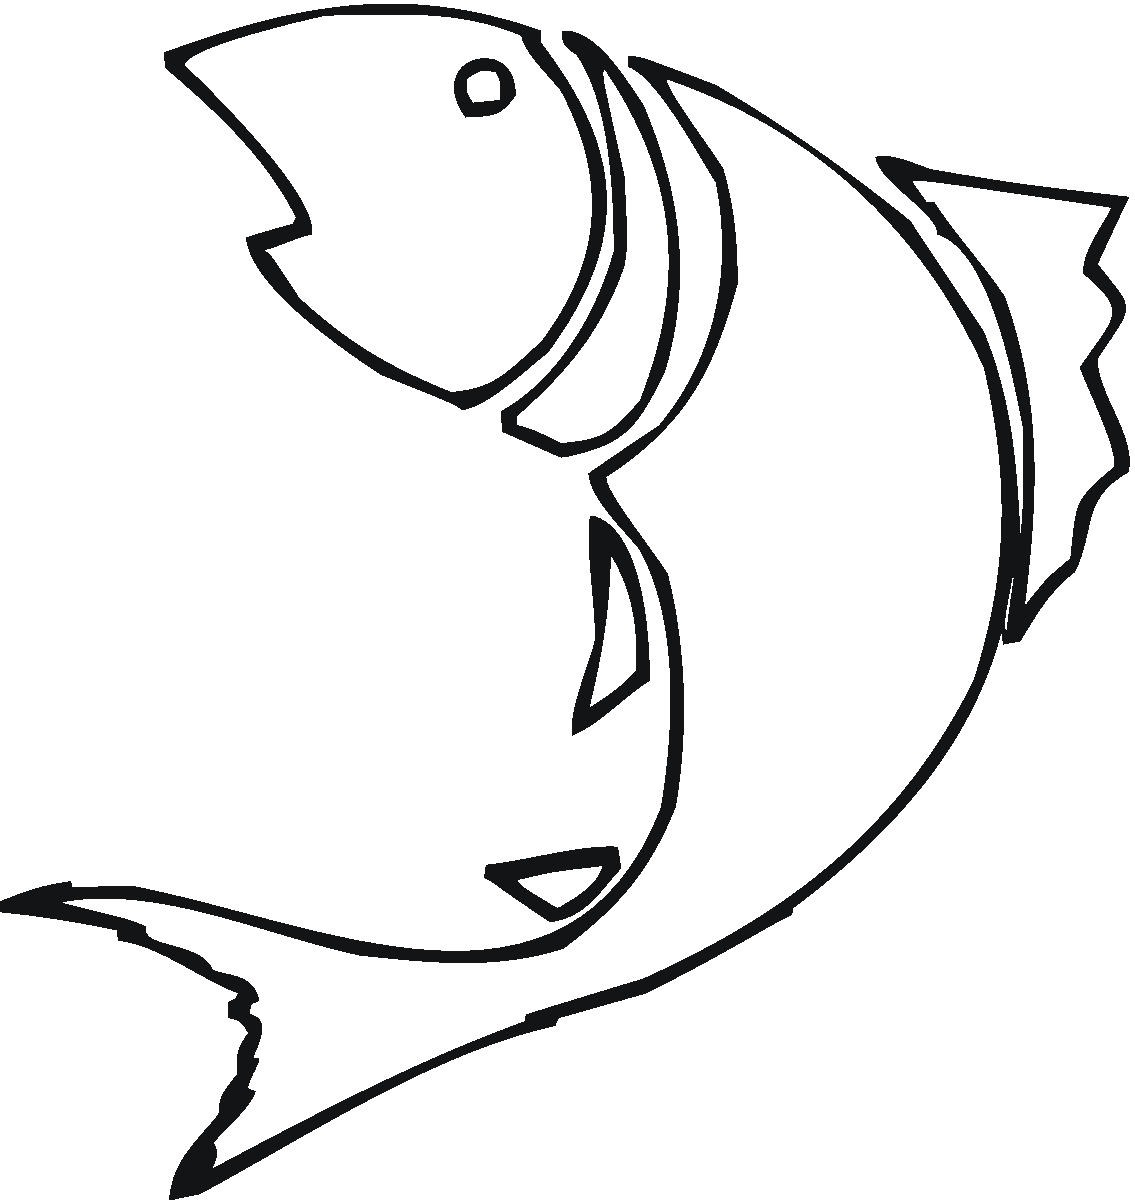 Fish Outline Template - ClipArt Best